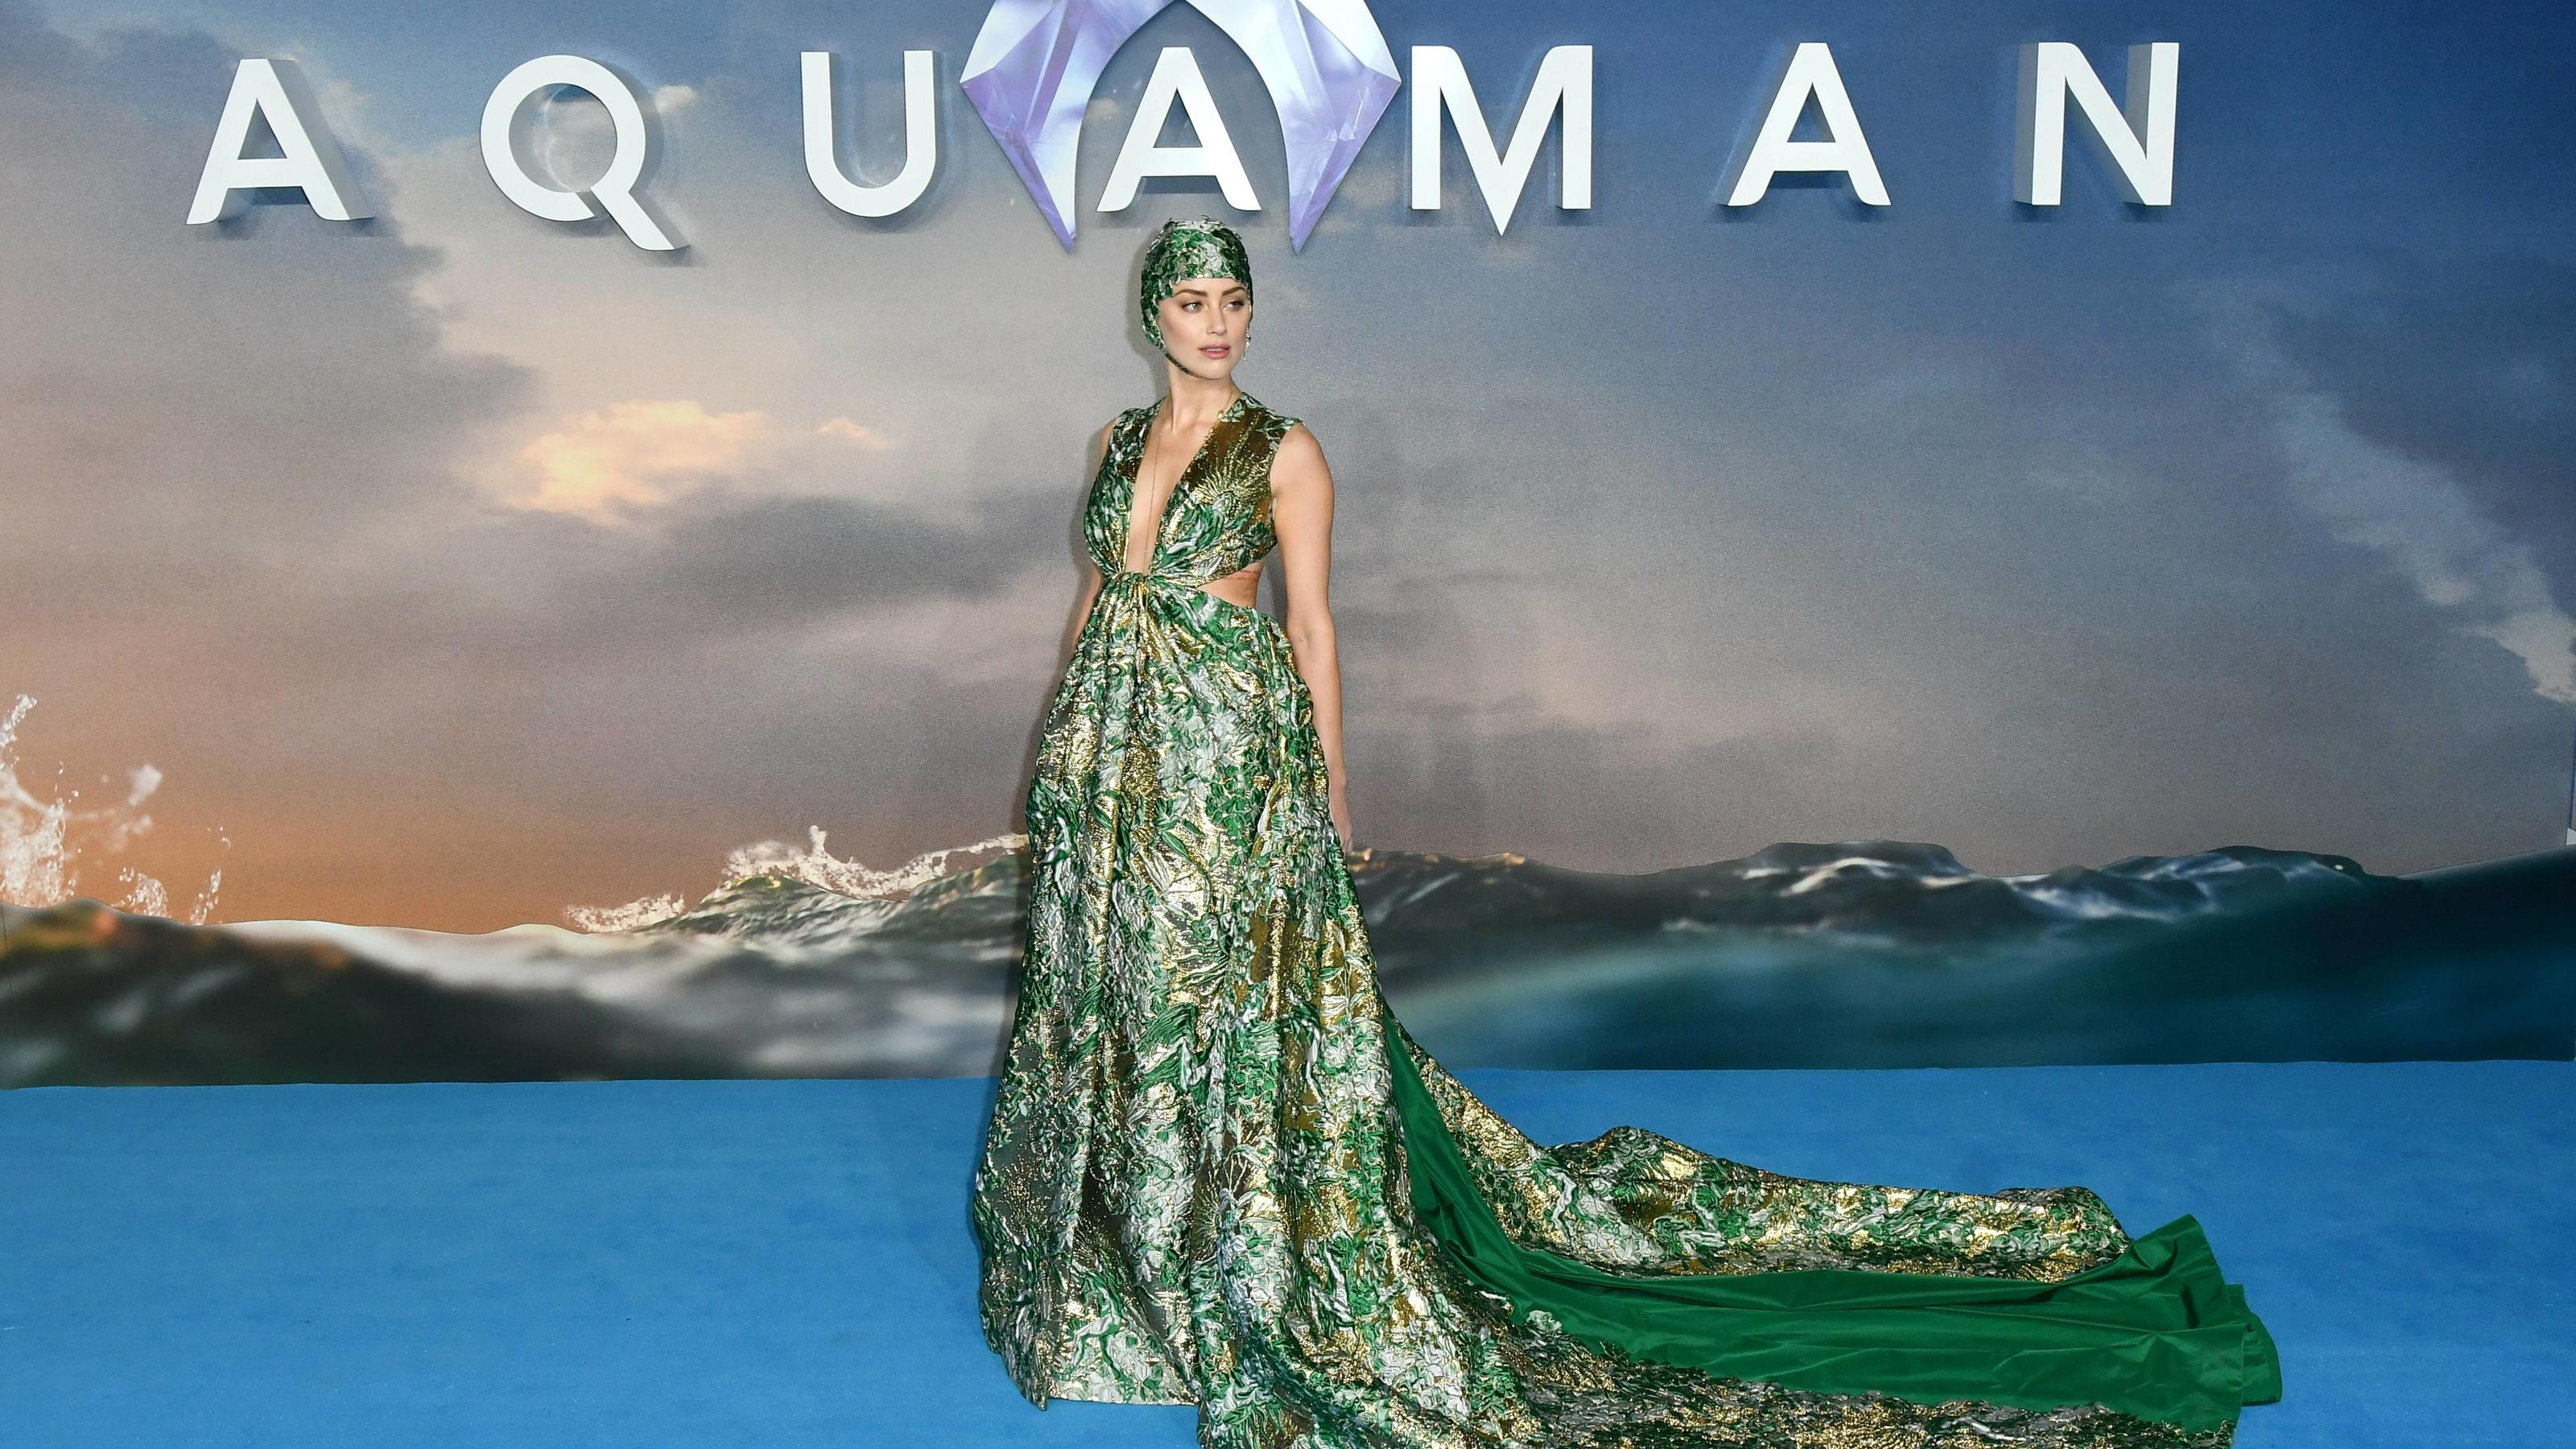 Entertainment Bilder des Tages American actress Amber Heard attends the World Premiere of Aquaman at Cineworld Leicester Square in London. NOVEMBER 26th 2018 PUBLICATIONxINxGERxSUIxAUTxHUNxONLY SLIx184390